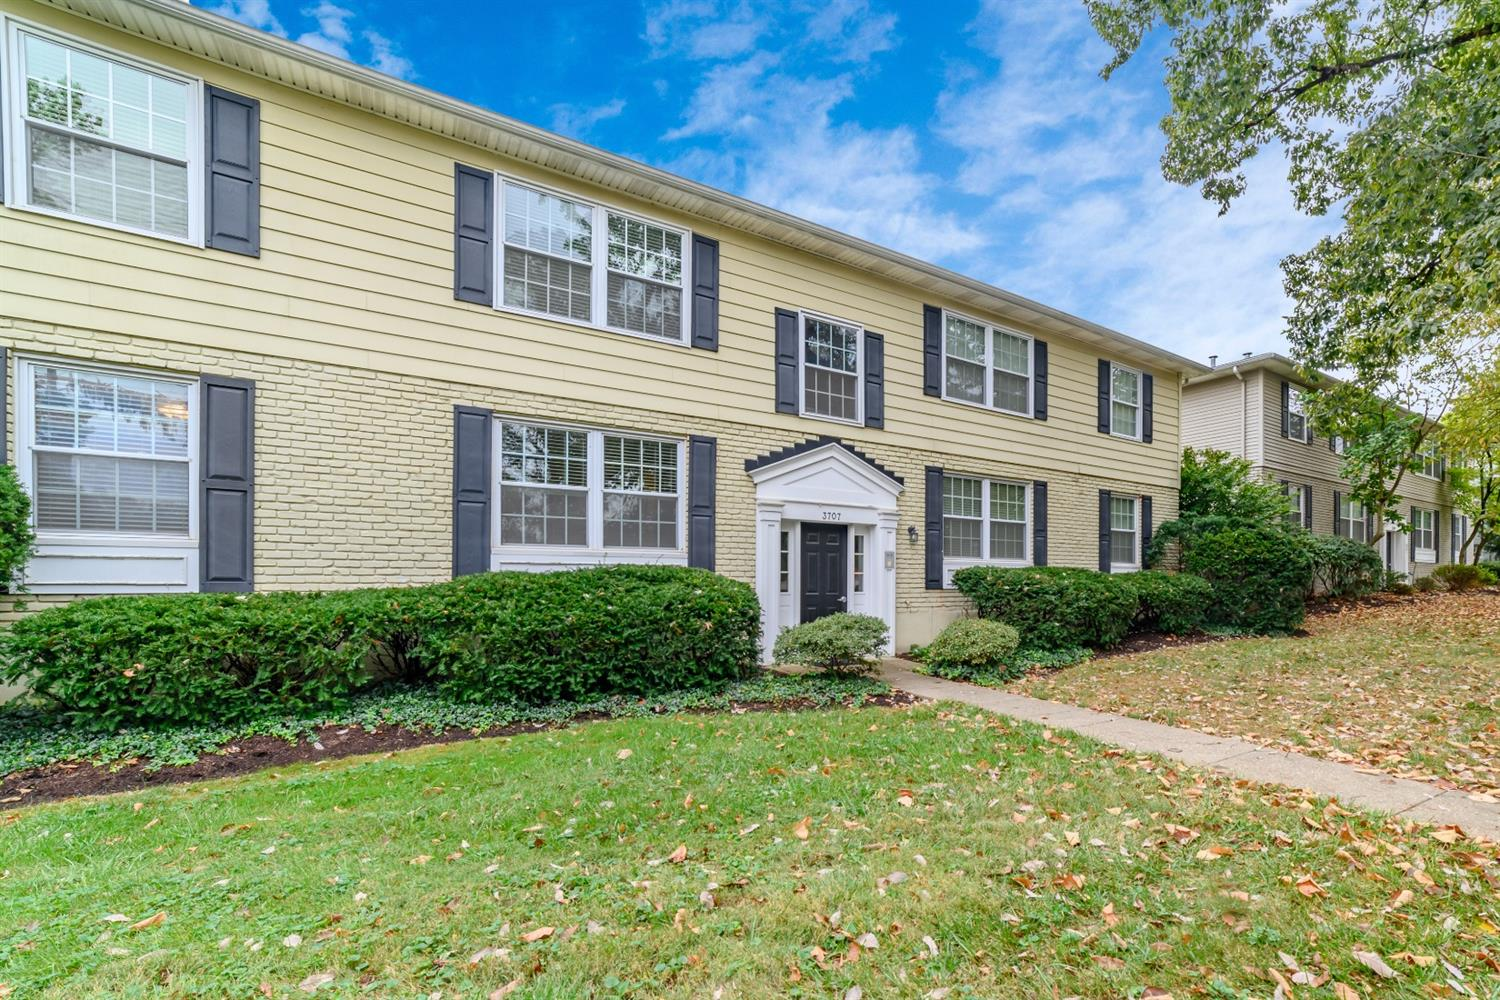 Photo 2 for 3707 Erie Ave #B Hyde Park, OH 45208